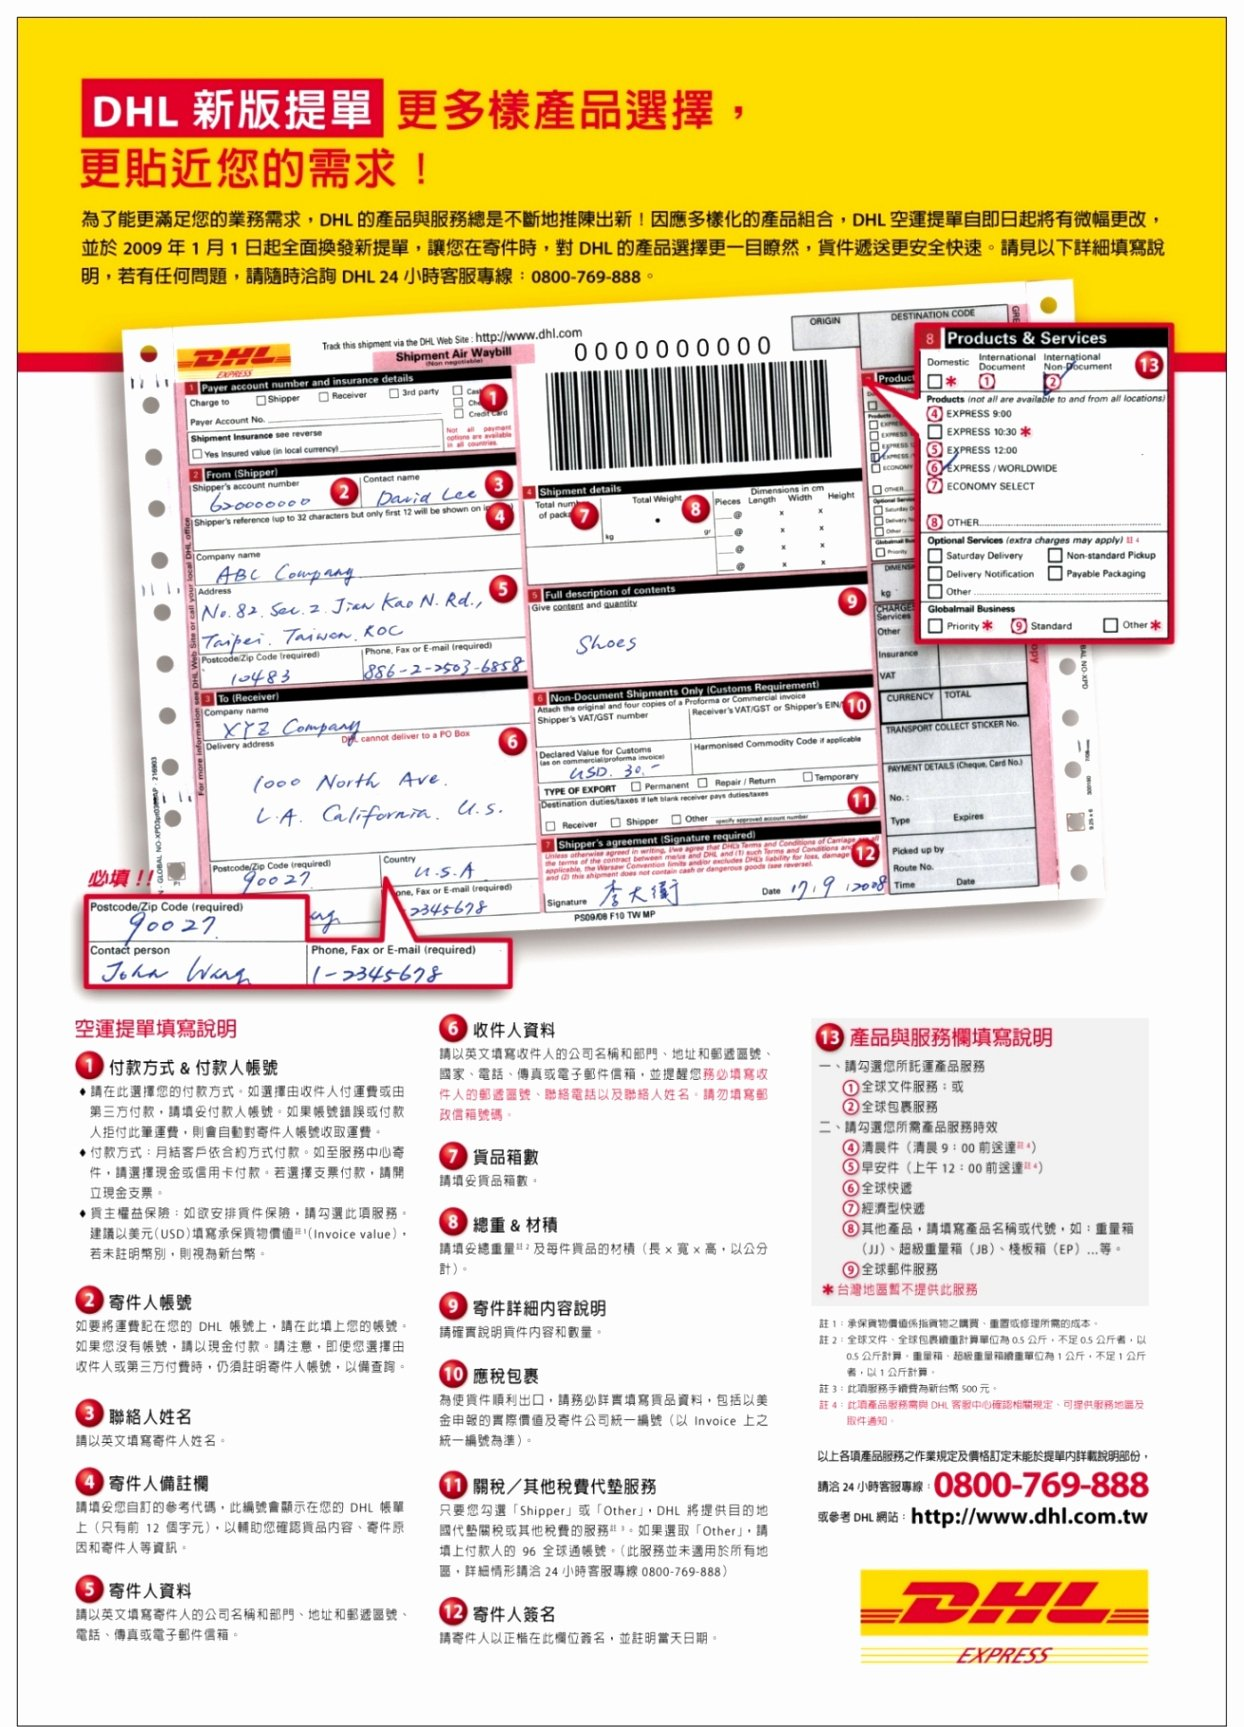 Shipper Letter Of Instruction Dhl New Dhl Shipment form Dhl Document Preparation Support